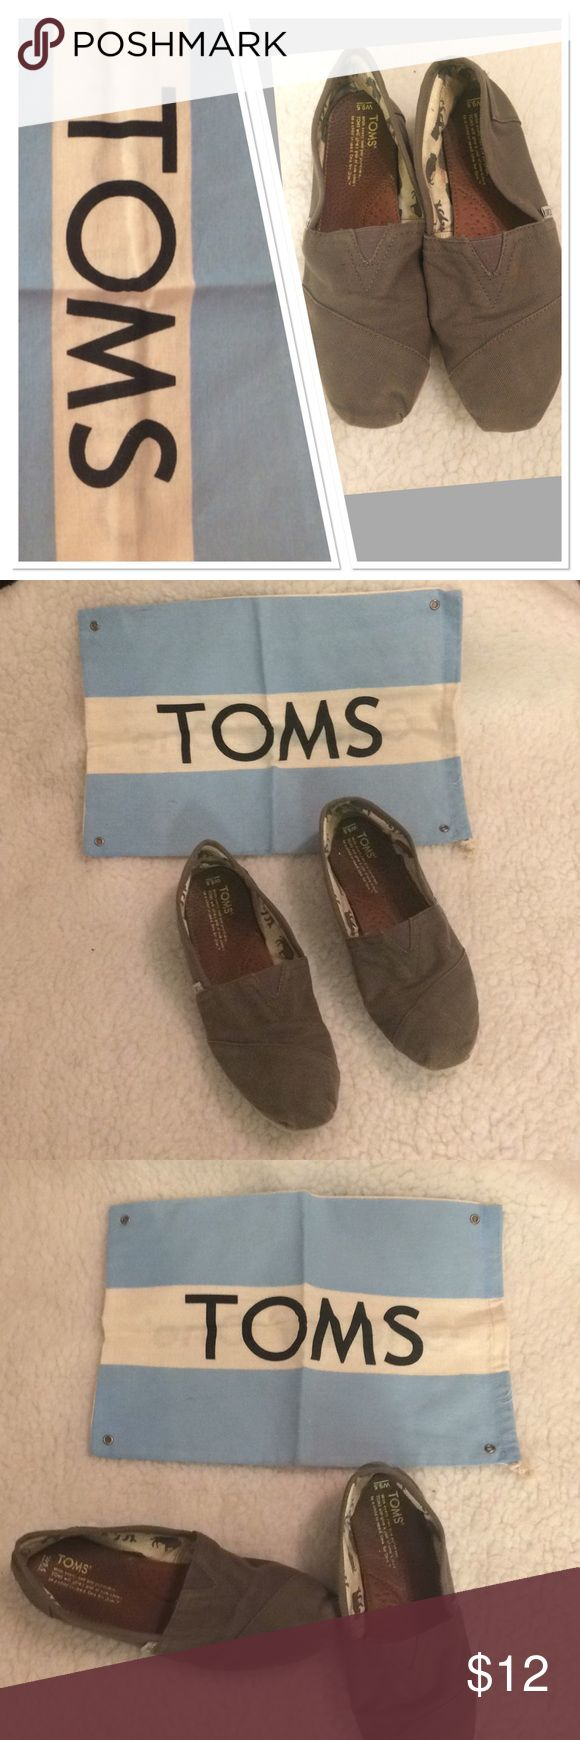 Women's TOM shoes size 9.5M gray flats comfy Pair of Women's Tom flats very comfortable shoes flats Gray size 9.5 used condition plenty of life left.. This are the shoes that will last a lifetime is you want them to creases in the front a small washable stain on front.. All needed is s quick wash Toms Shoes Flats & Loafers